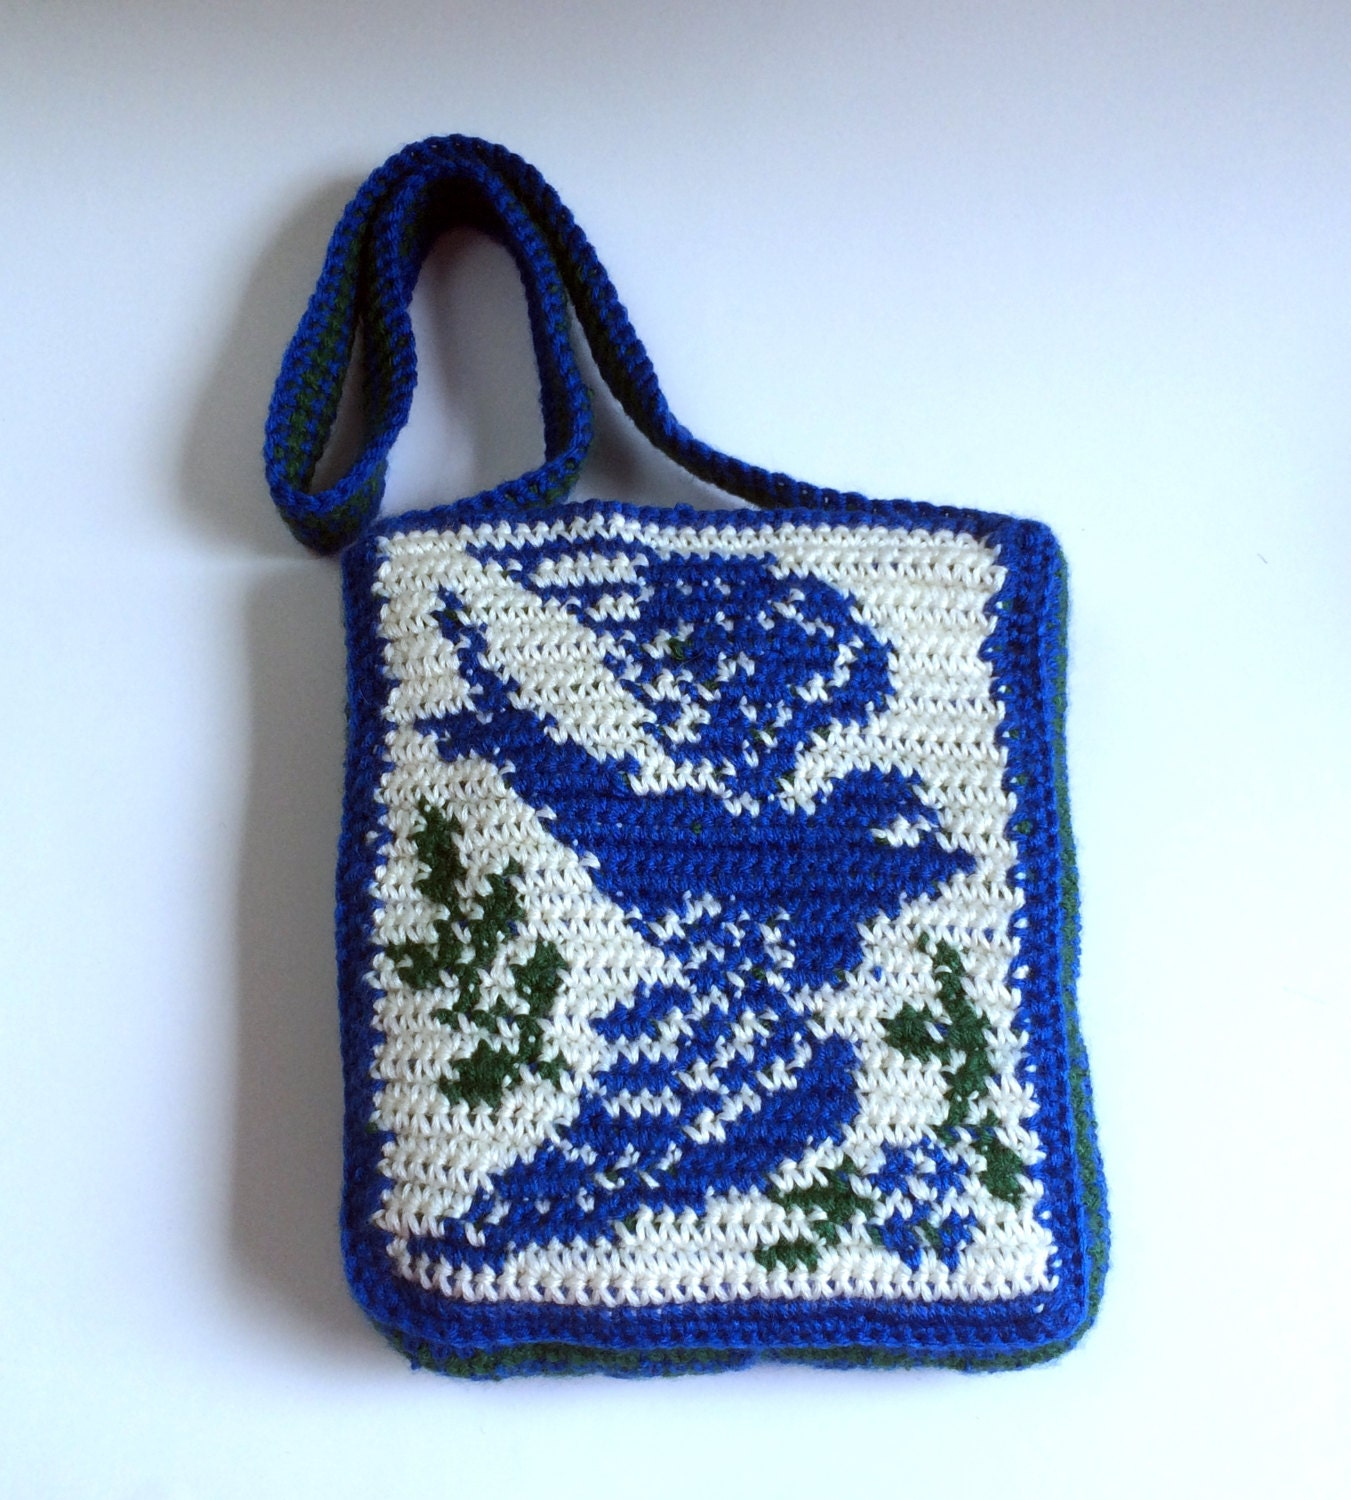 Tapestry Crochet Bag : Bluebird Purse Tapestry Crochet Bag by SoftsideCrochet on Etsy